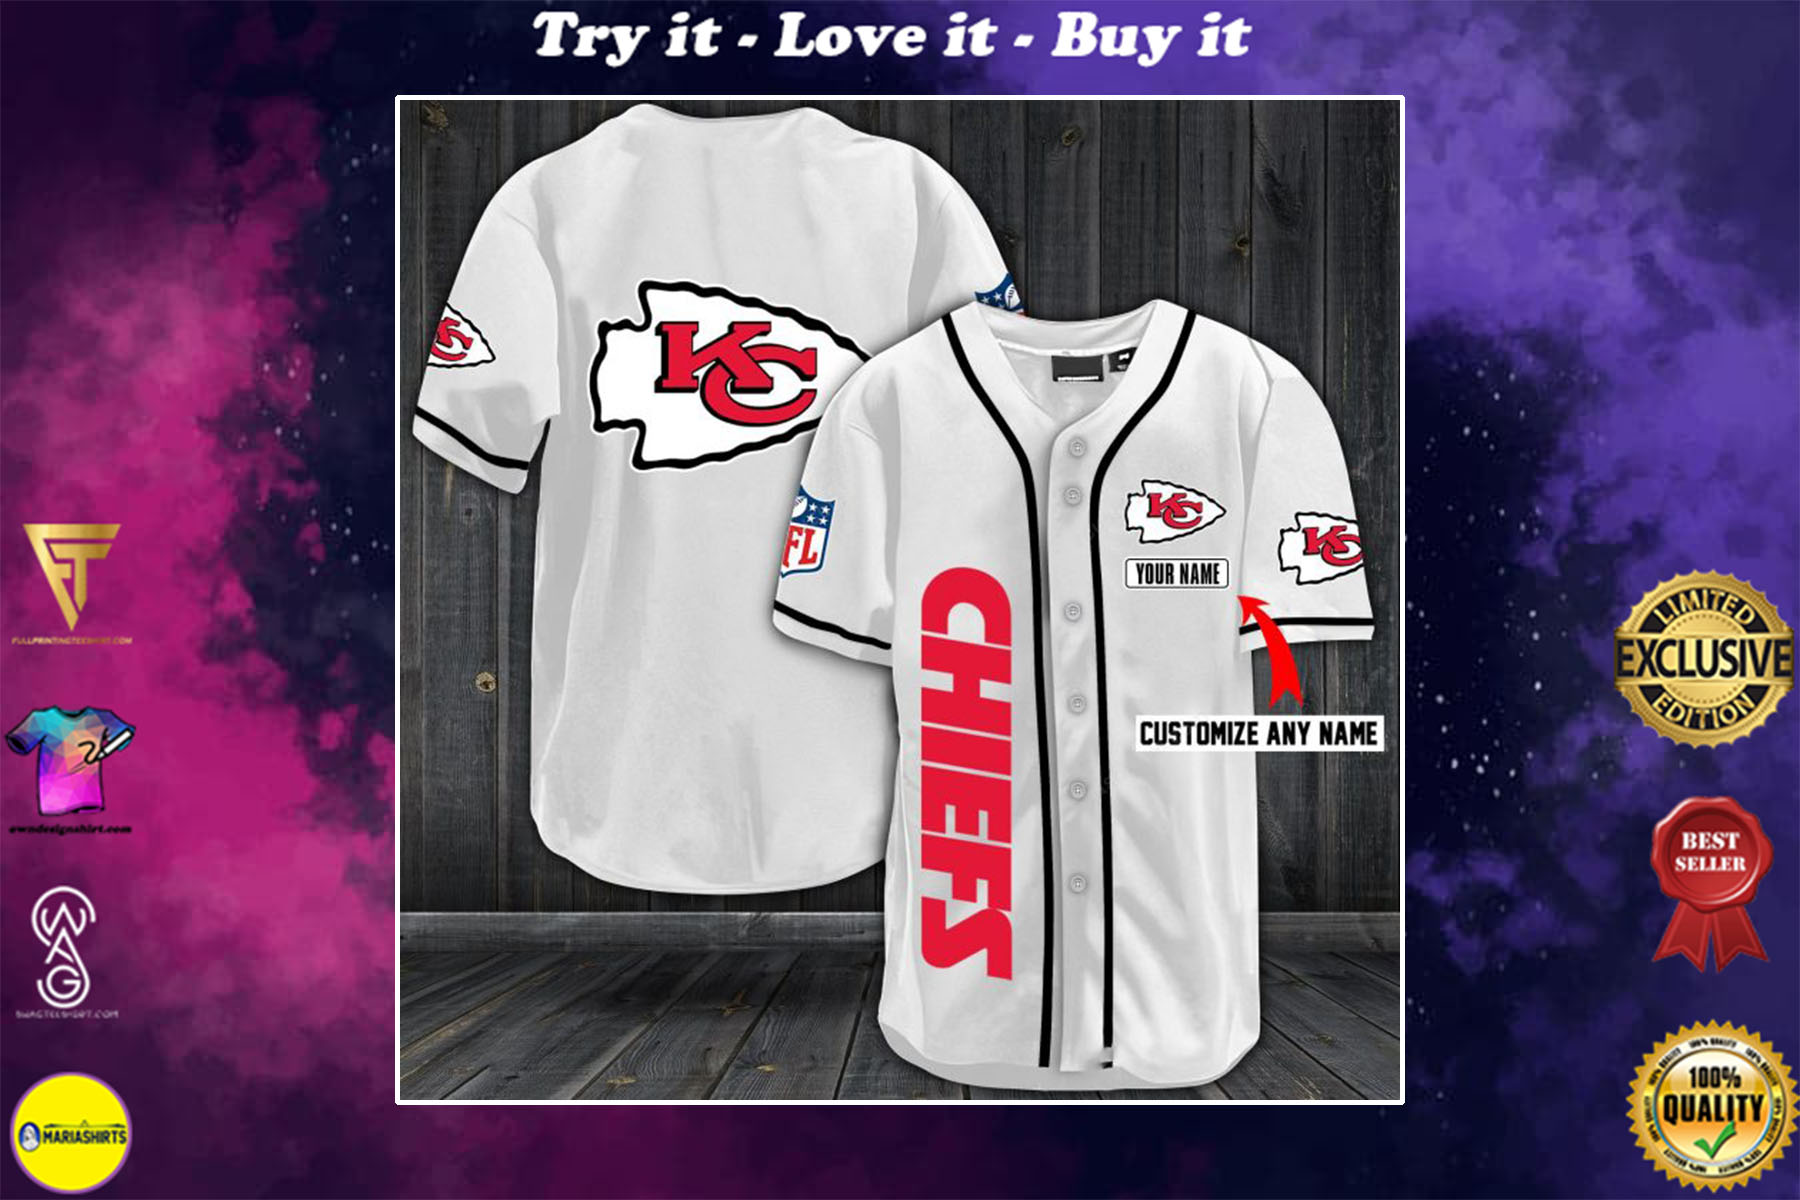 [special edition] personalized name jersey kansas city chiefs full printing shirt - maria